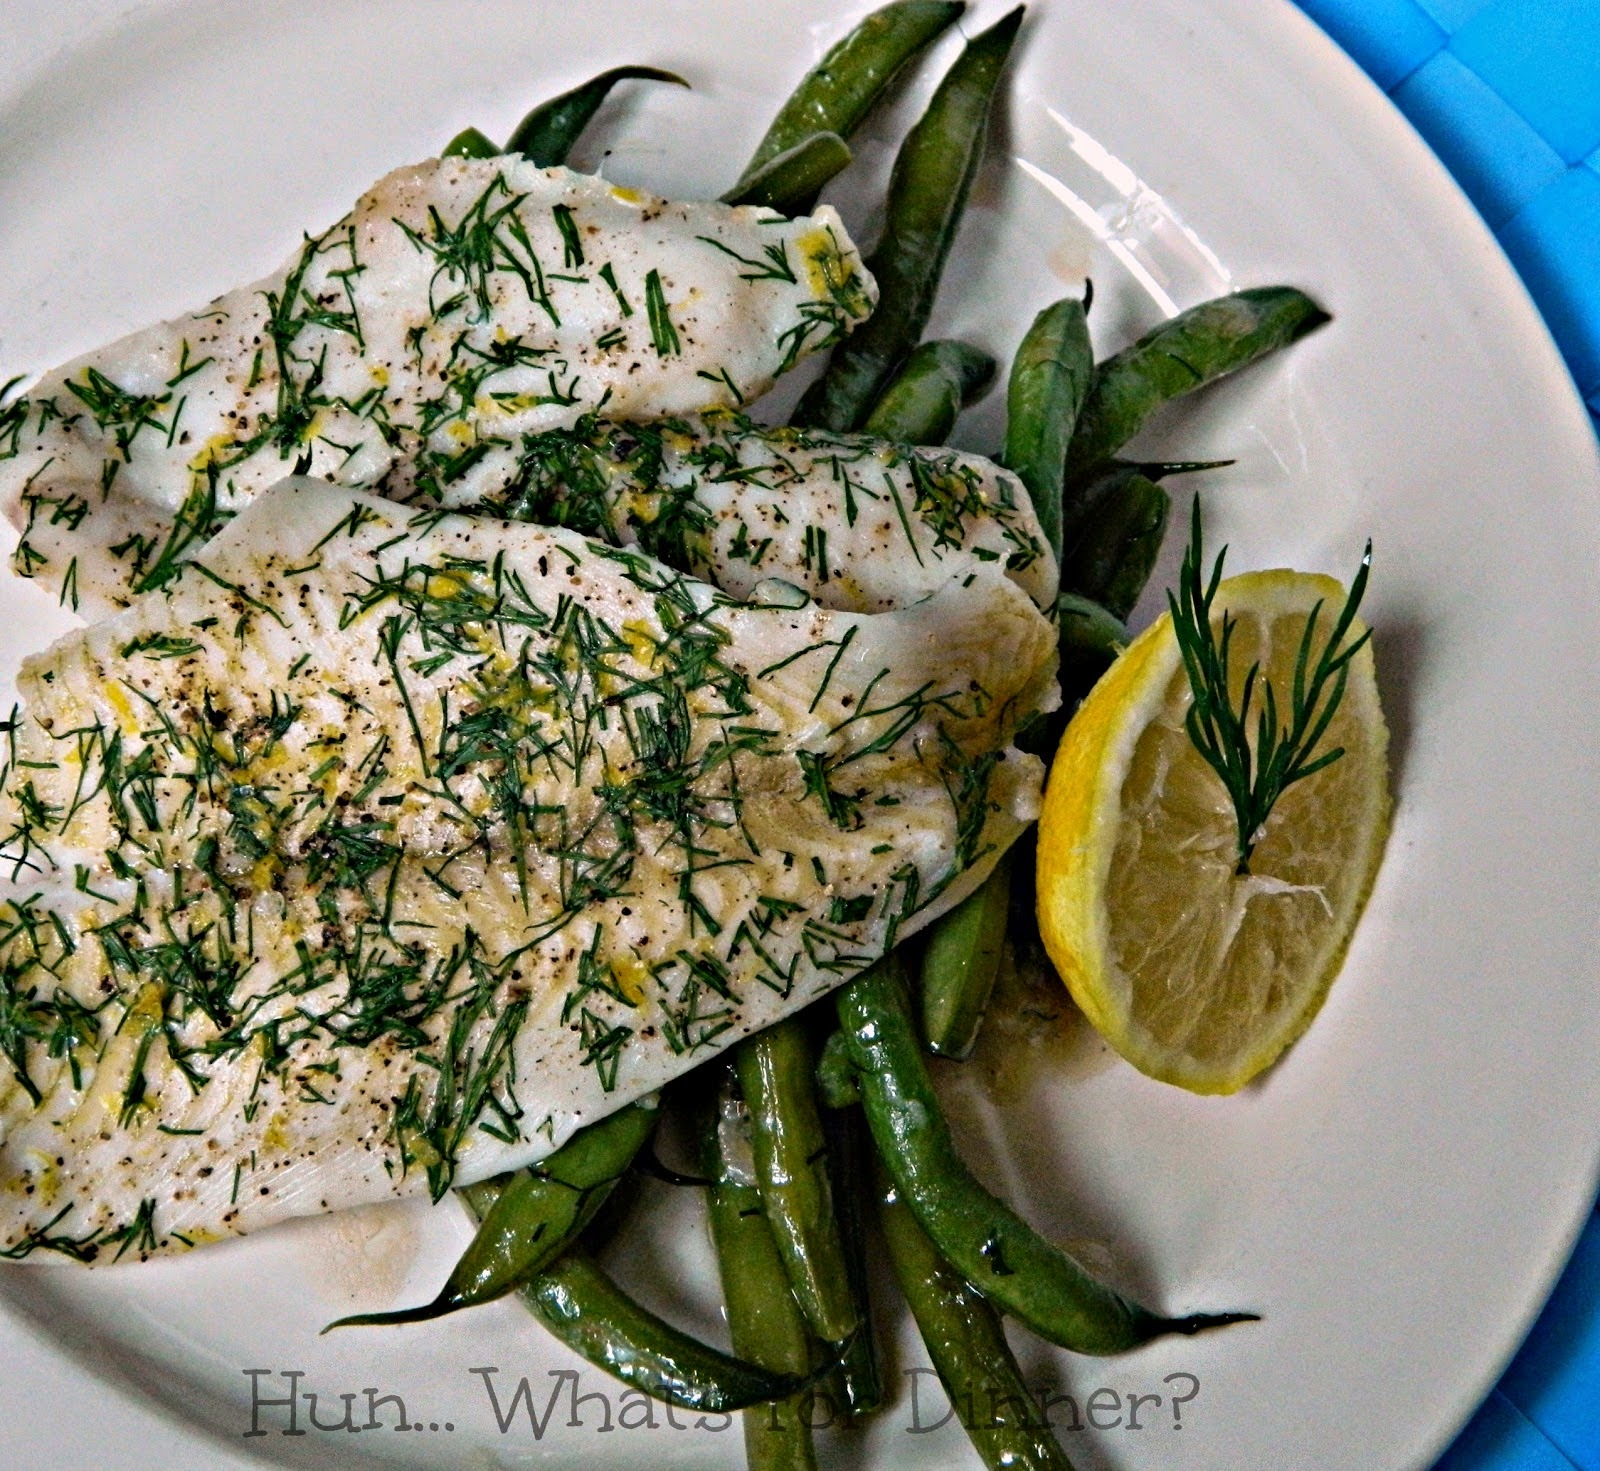 Lemon dill sole with green beans